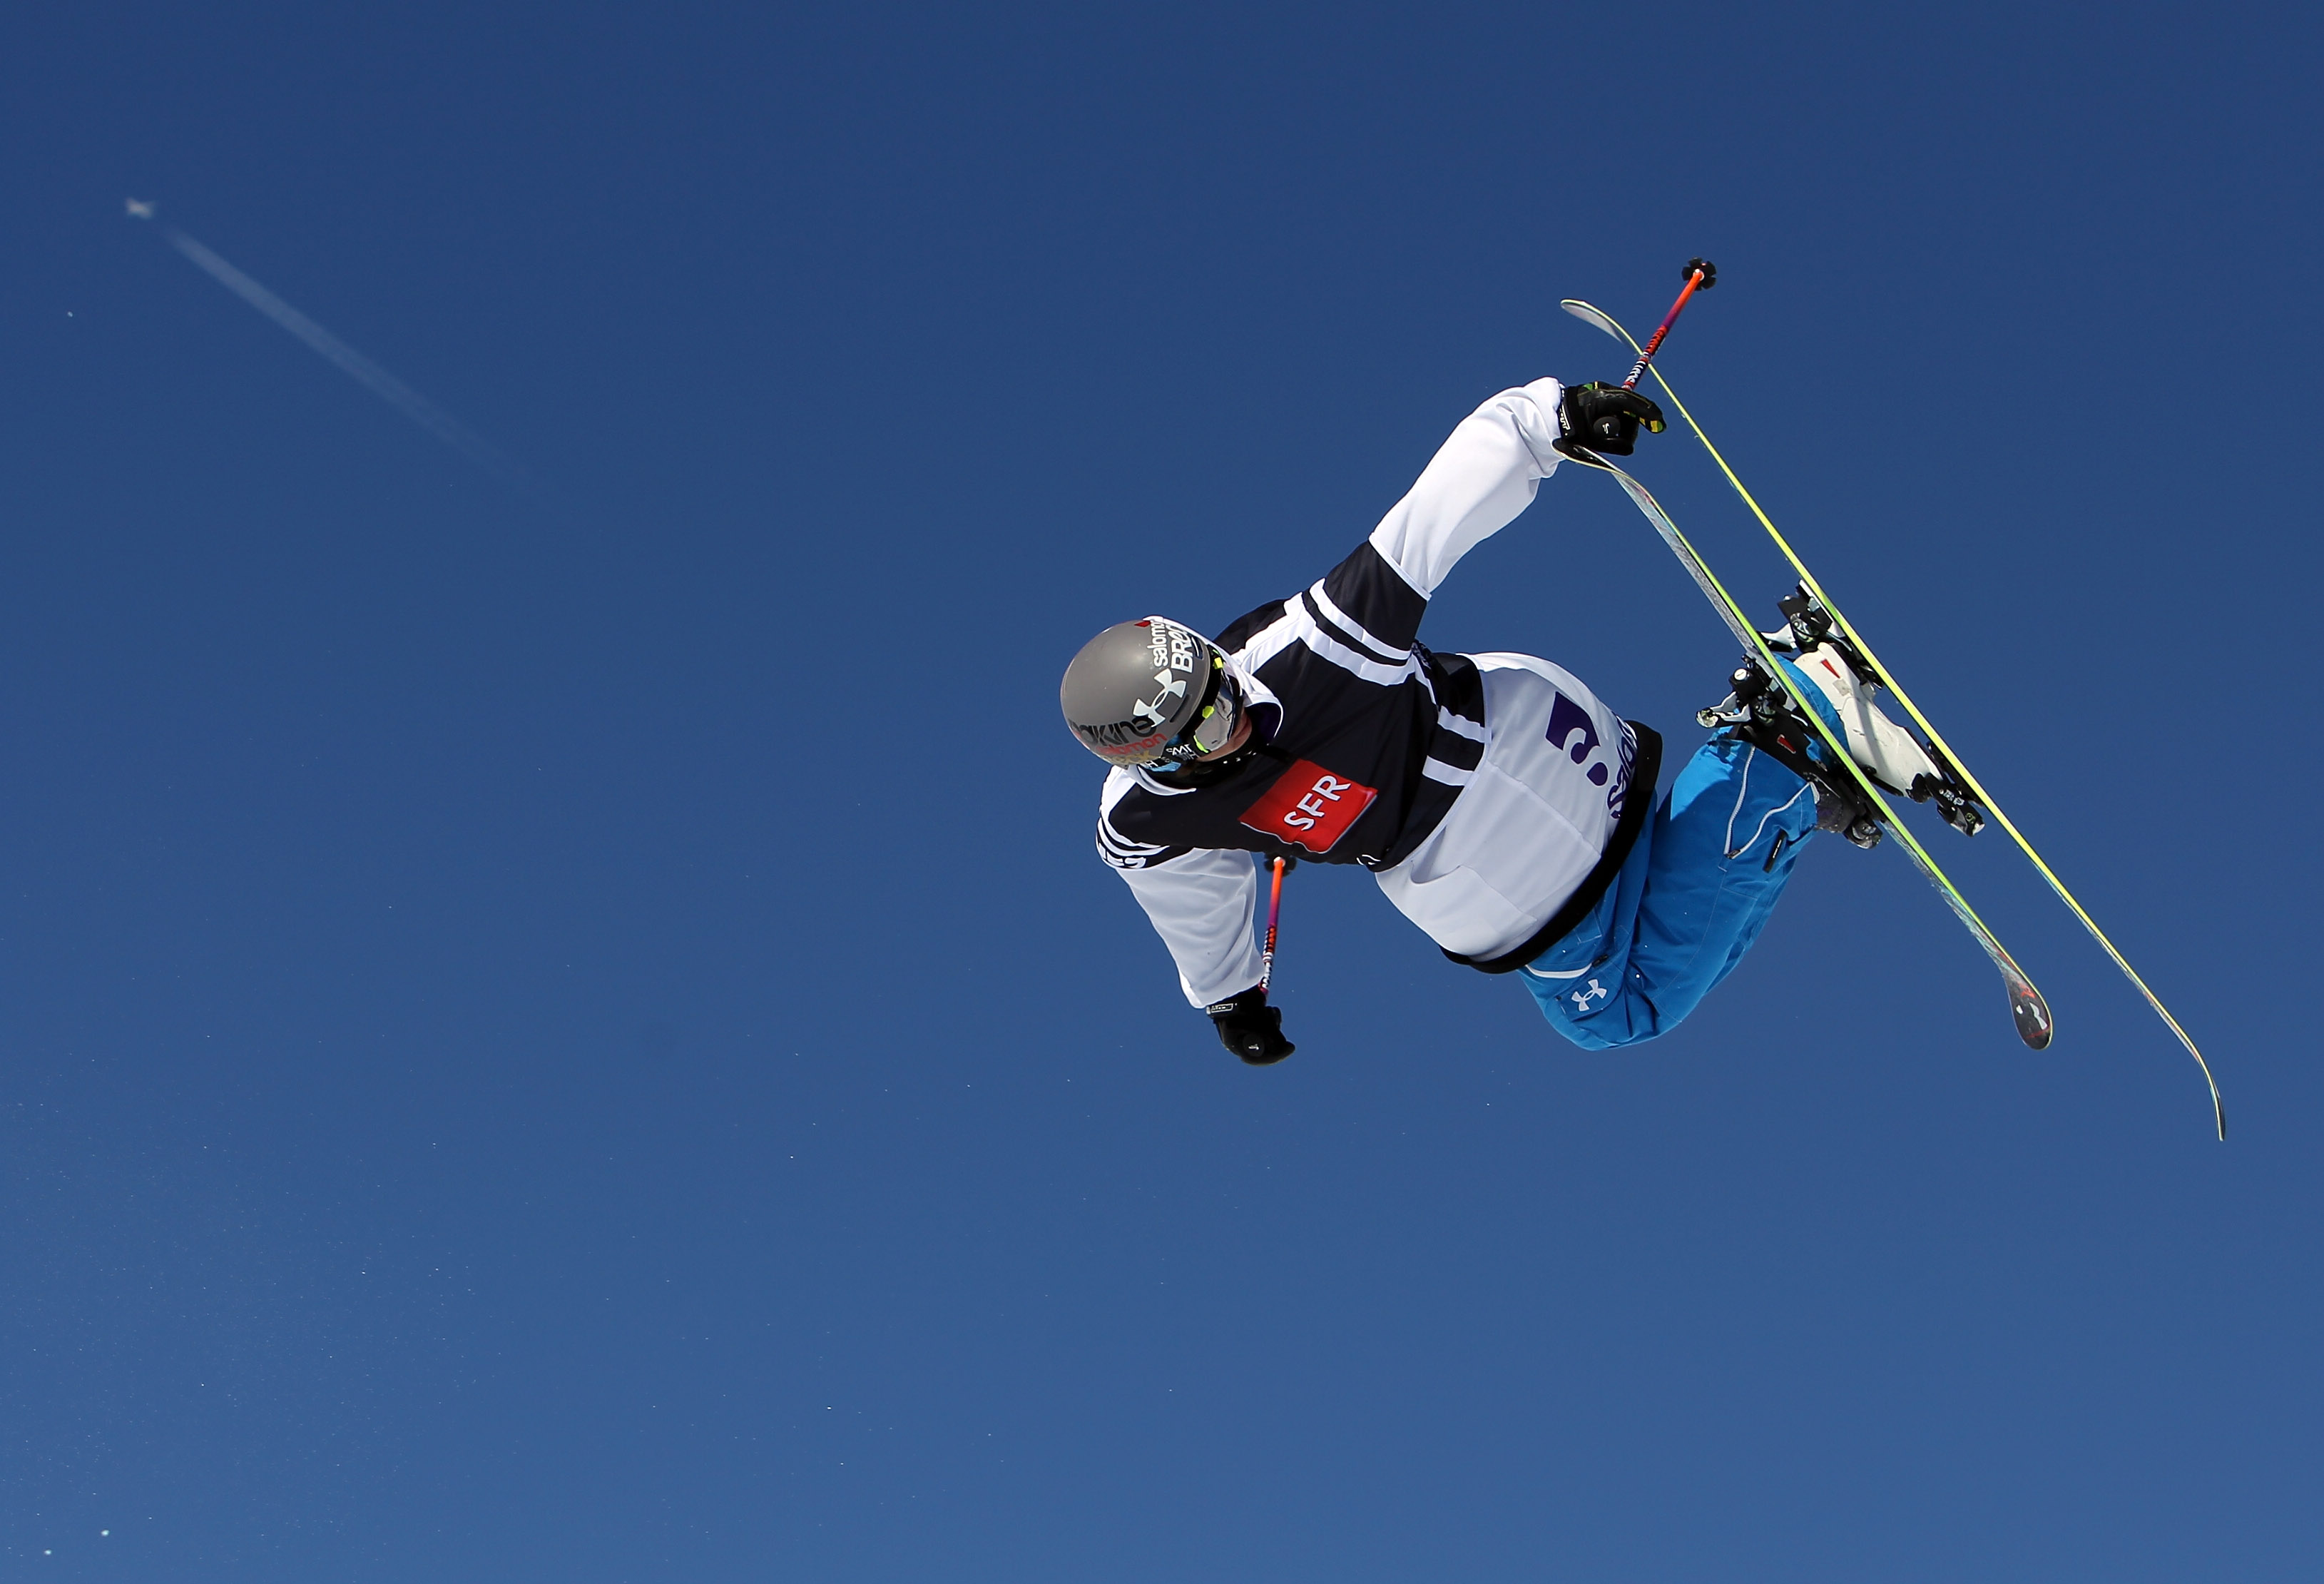 TIGNES, FRANCE - MARCH 11:  Bobby Brown of USA in action in the Ski Slopestyle during the Winter X Games Europe on March 11, 2010 in Tignes, France.  (Photo by Julian Finney/Getty Images)